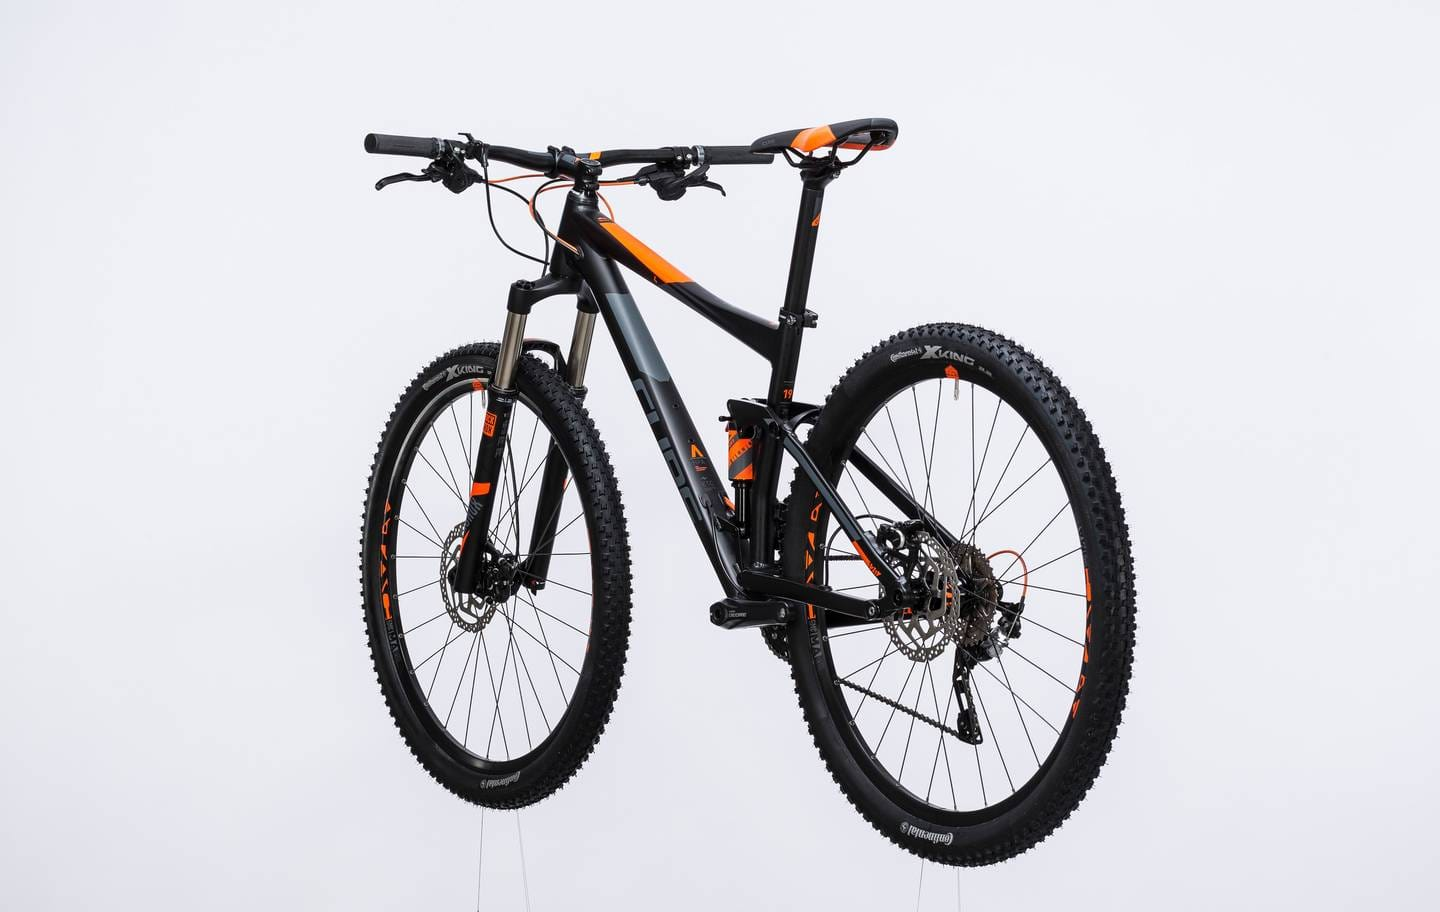 cube stereo 120 hpa pro 29 mtb bike 2017 all terrain cycles. Black Bedroom Furniture Sets. Home Design Ideas